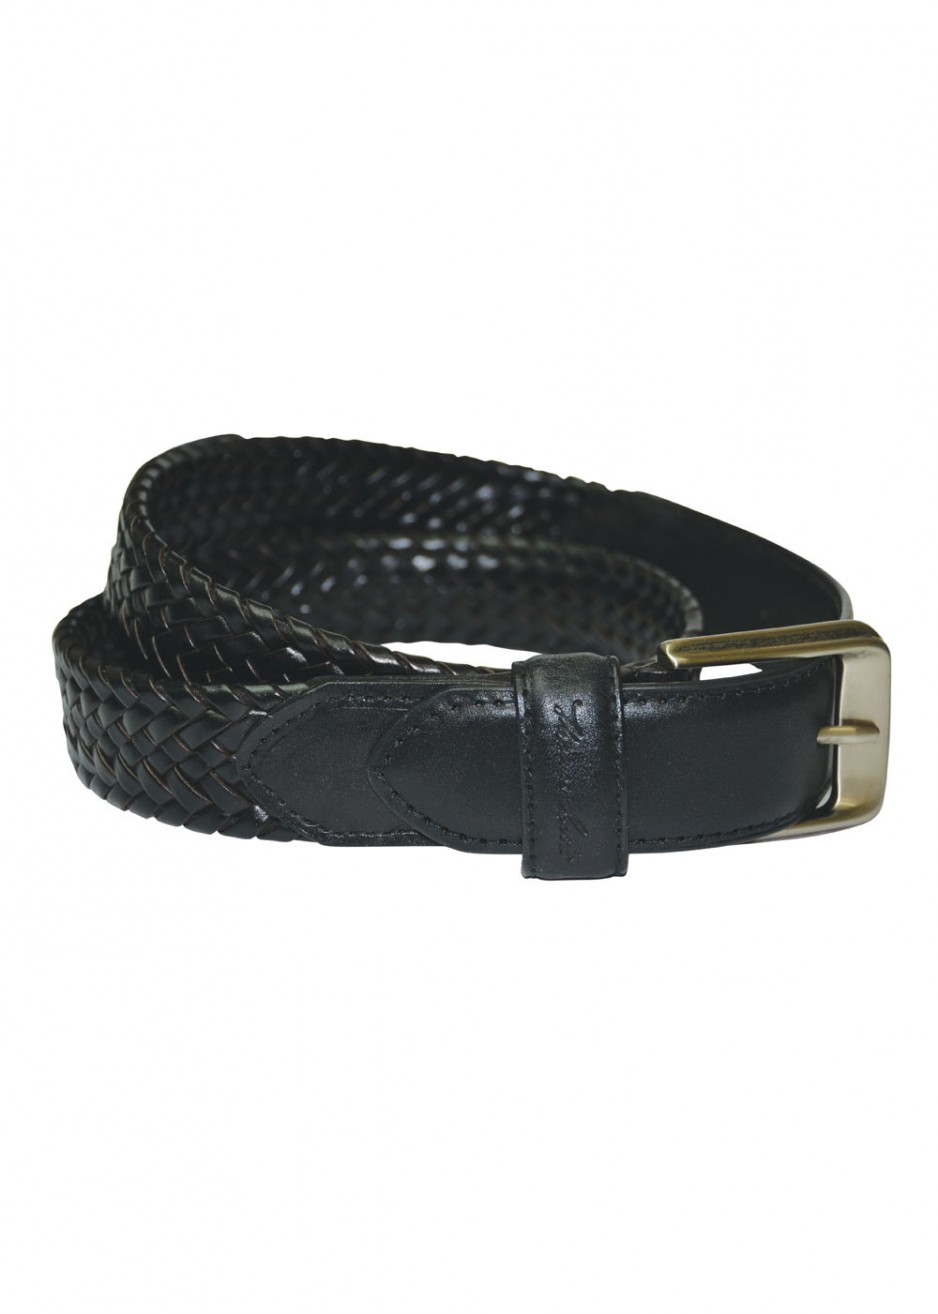 HARRY LEATHER BRAIDED BELT